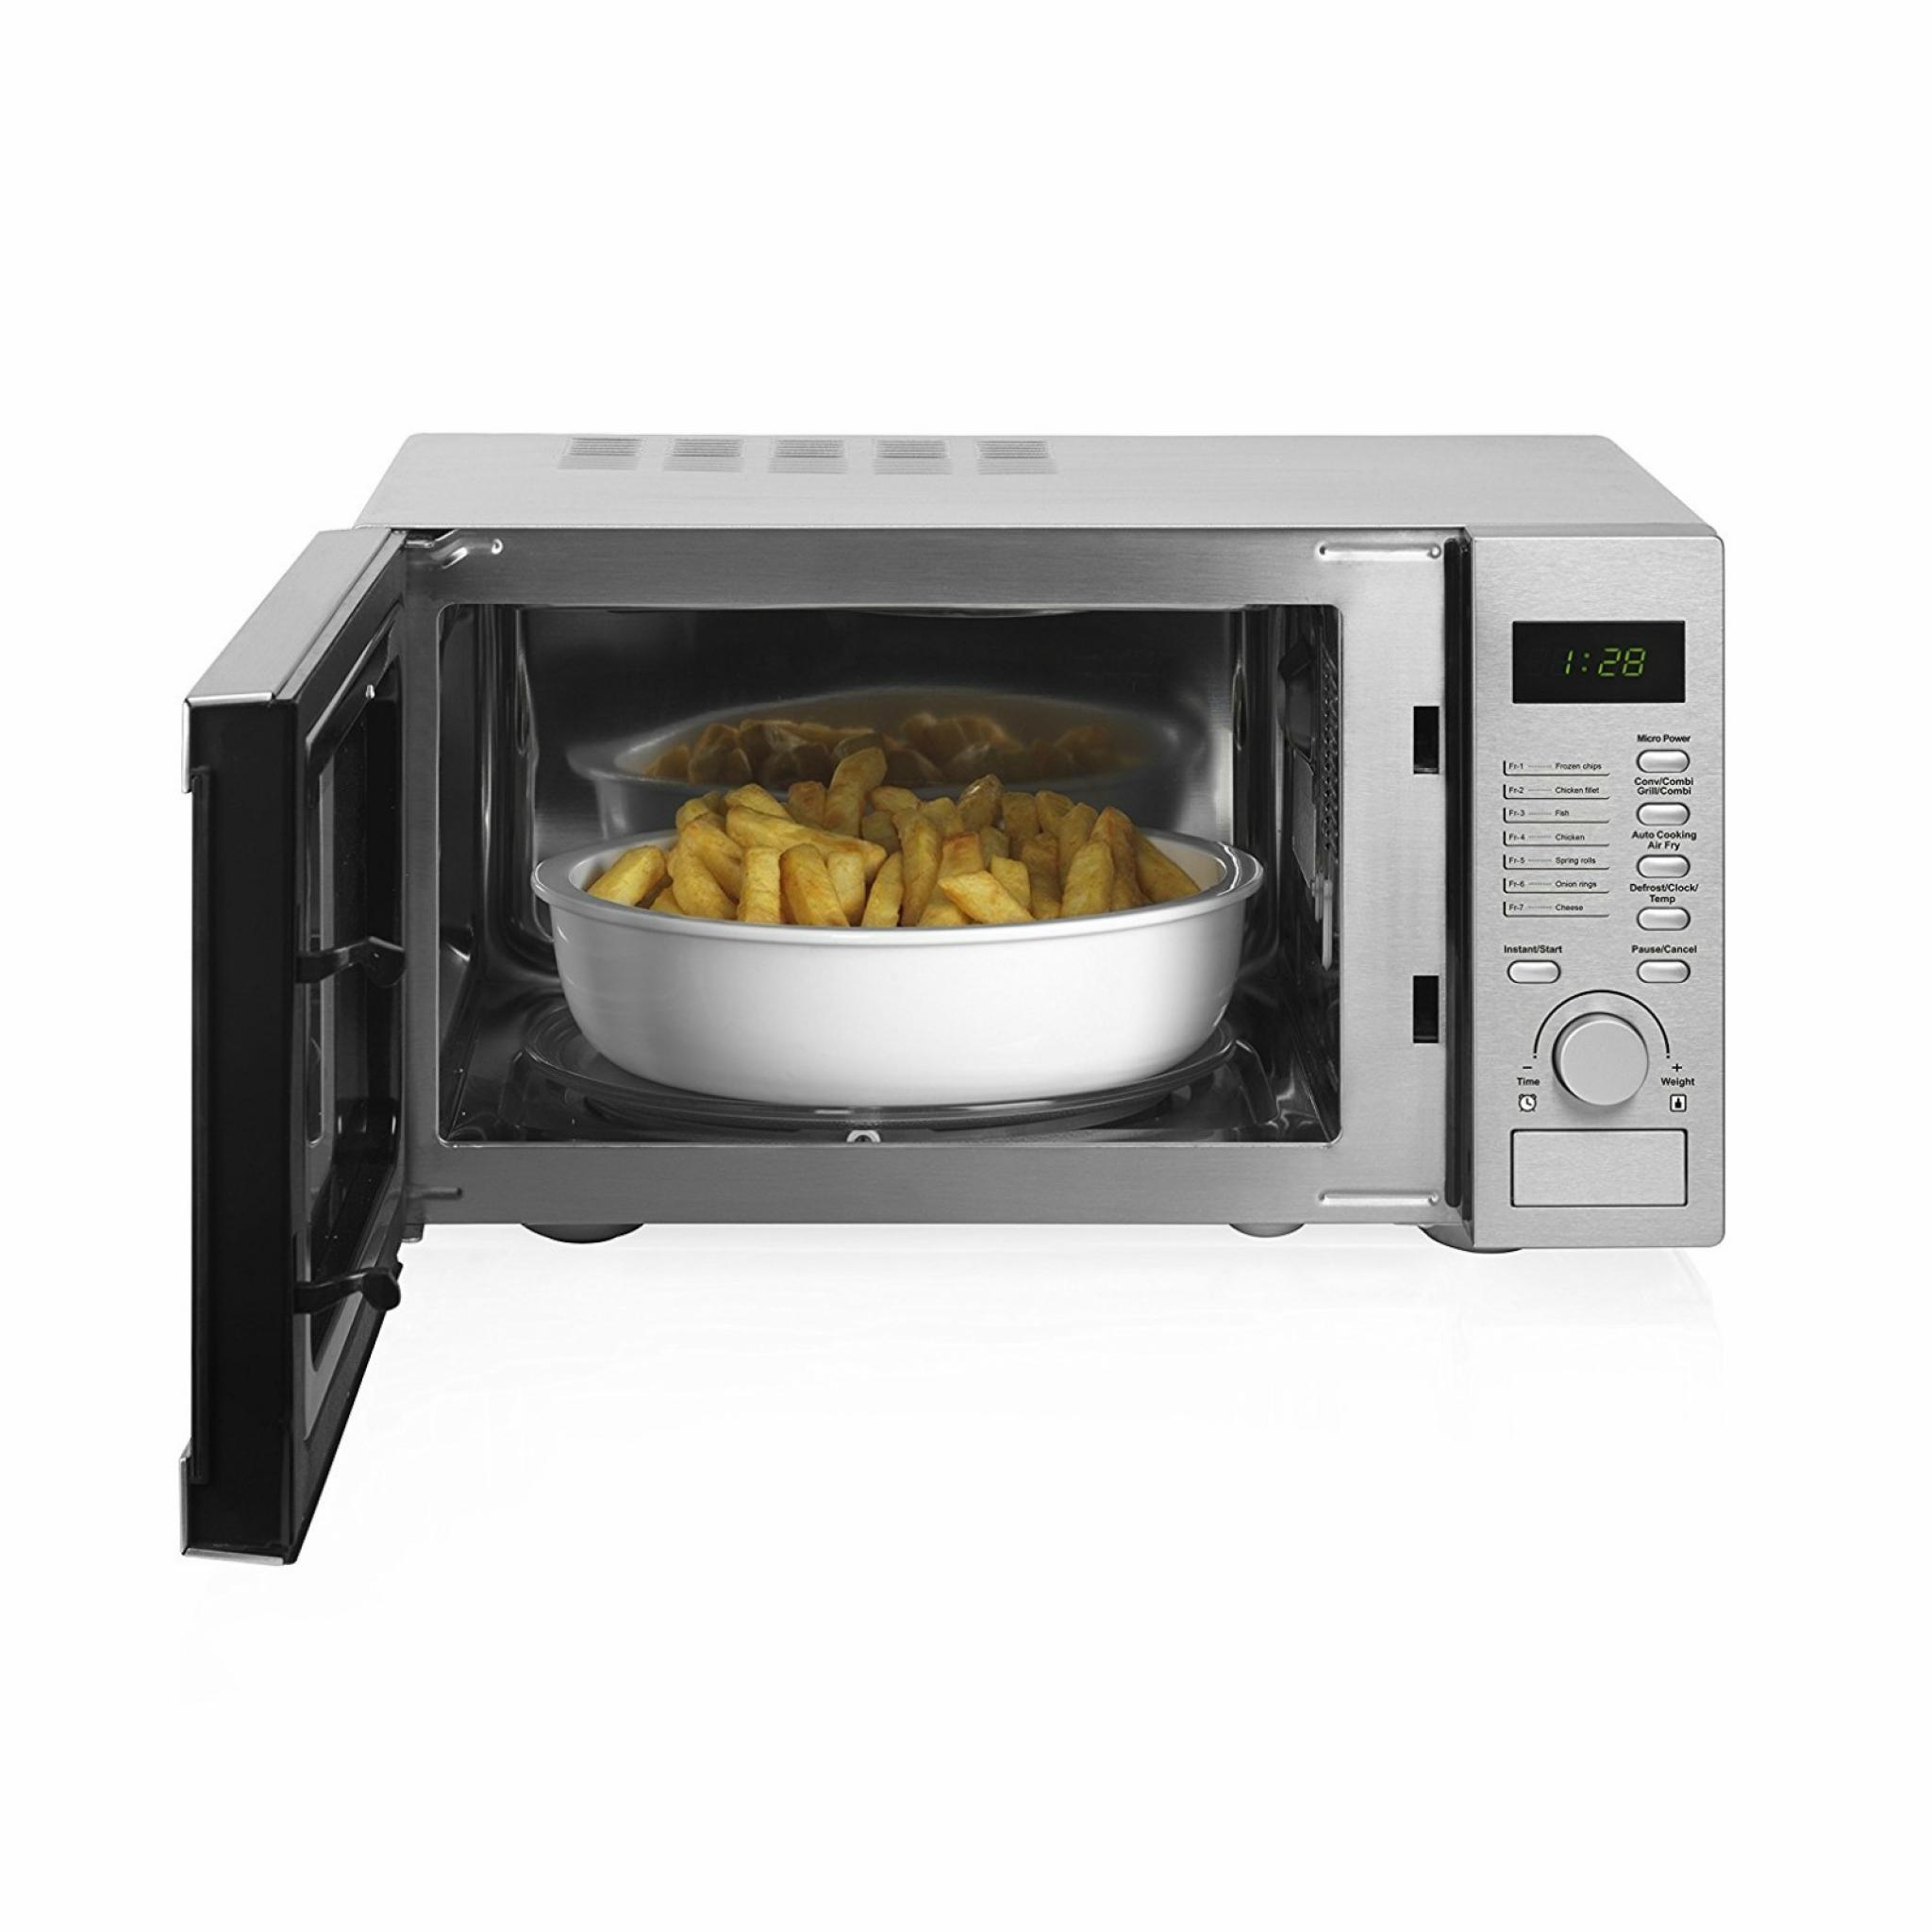 tower t24002 5 in 1 multi air fryer microwave combi oven grill